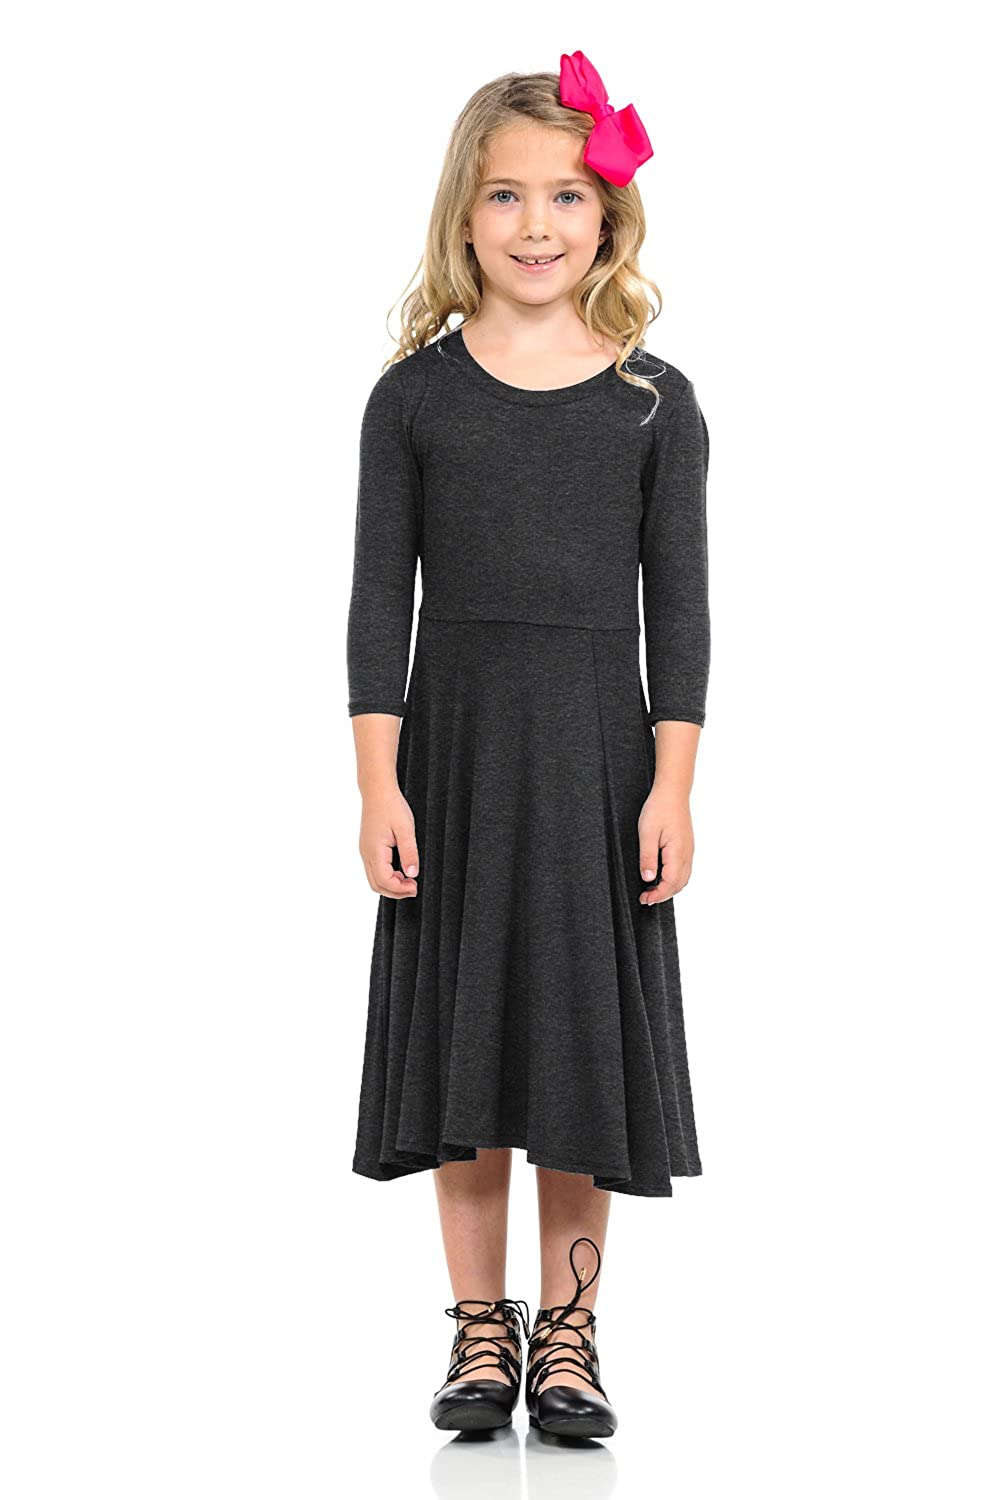 a406fae7d Top 10 wholesale Dresses On Amazon For Girls - Chinabrands.com